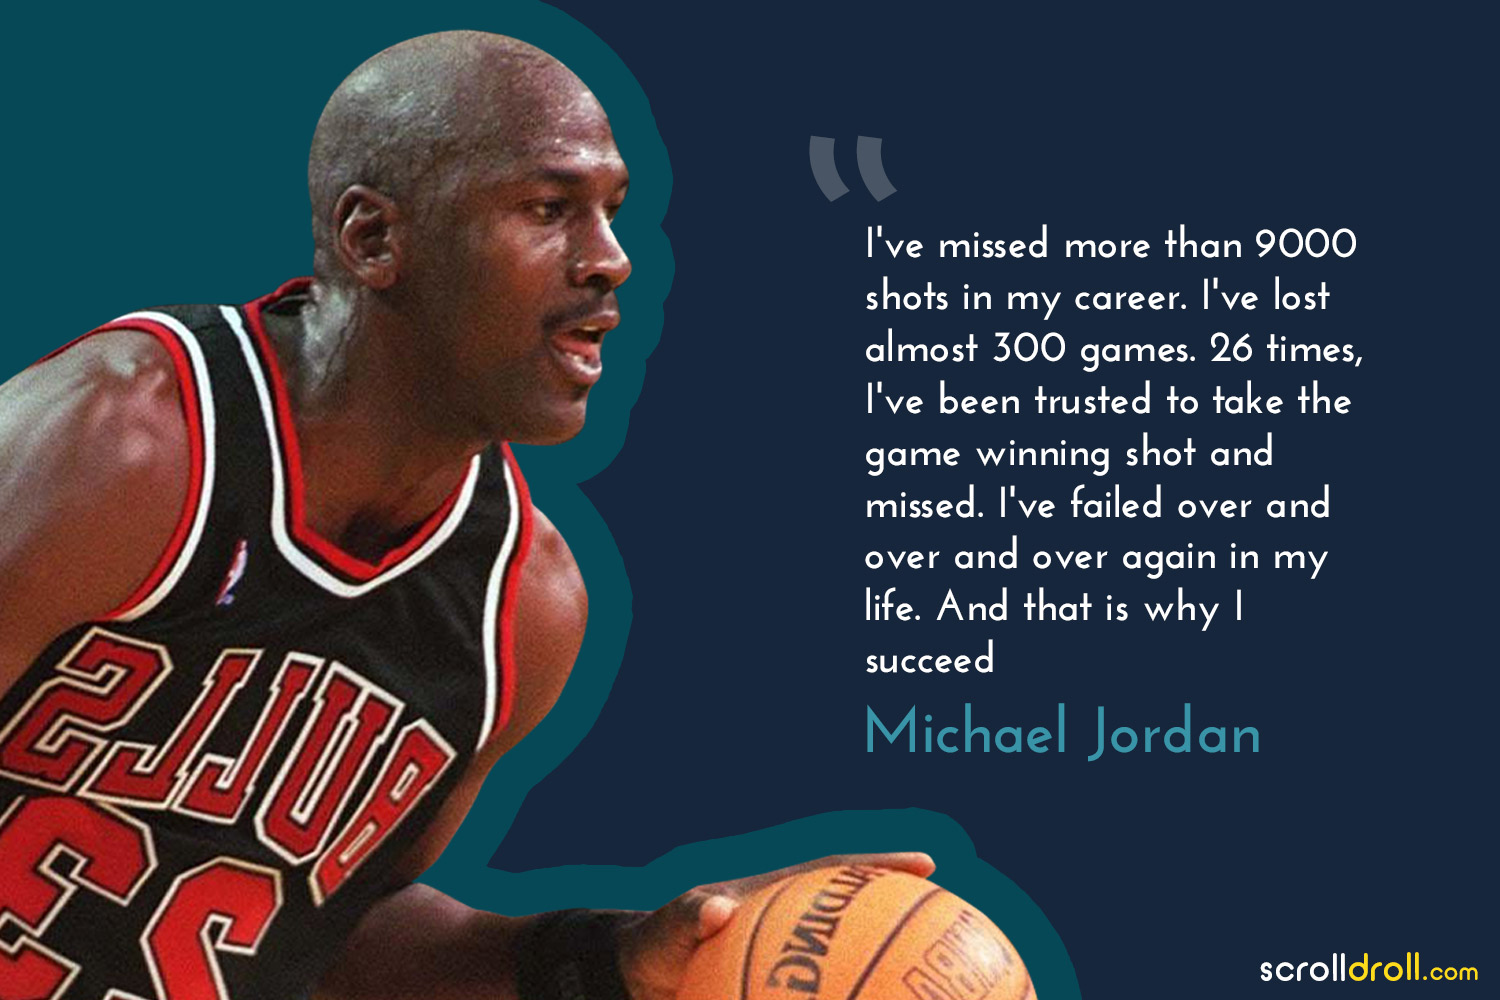 Powerful Quotes By Successful People-quote by michael jordan